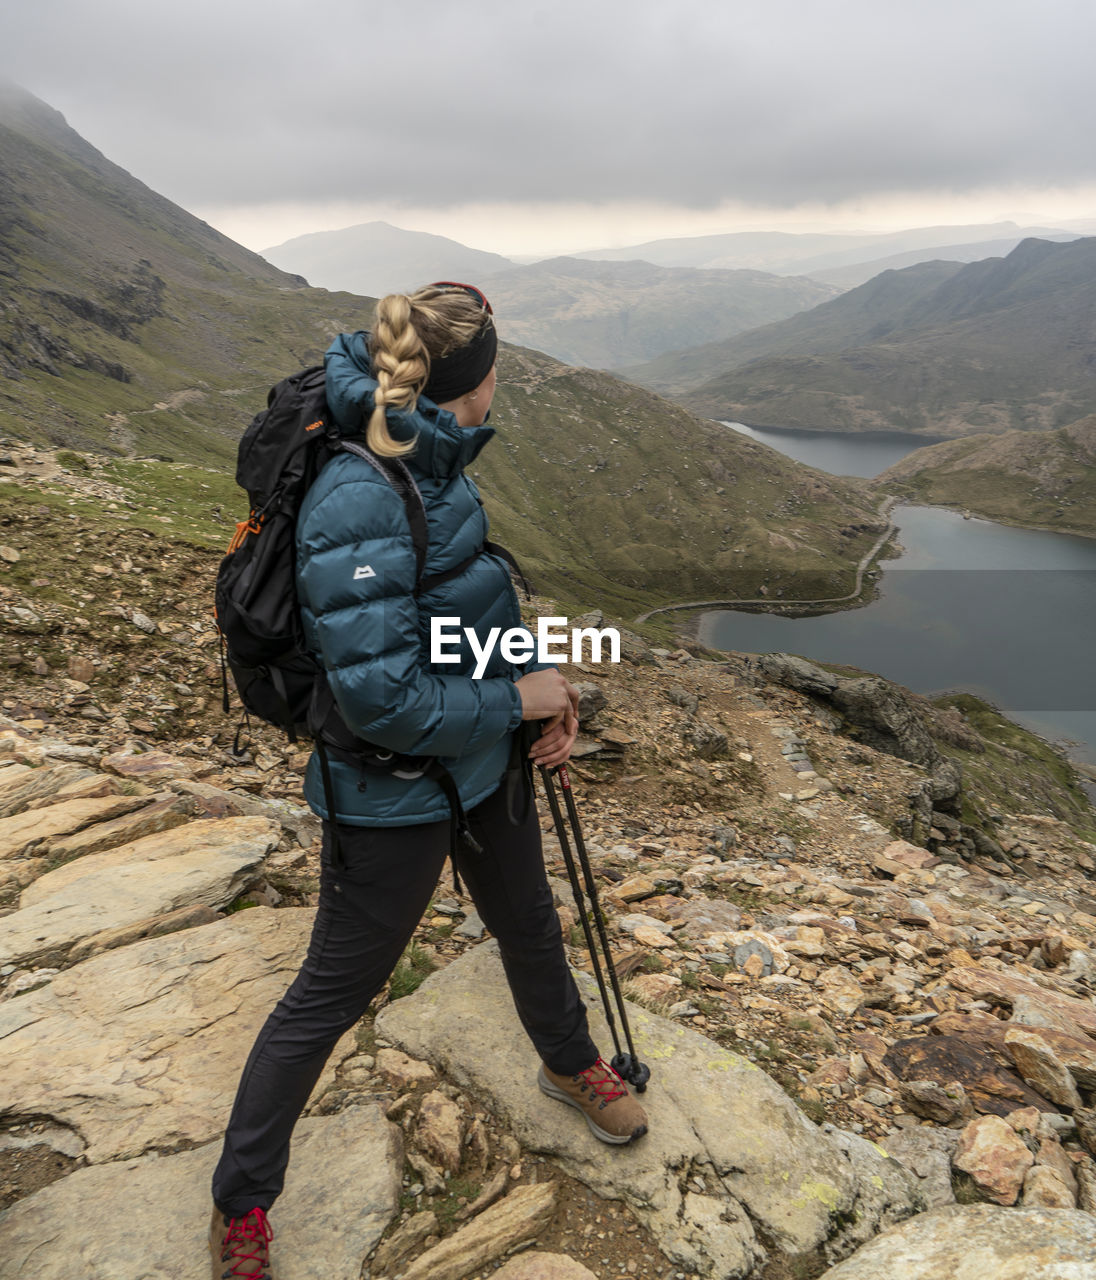 mountain, real people, leisure activity, lifestyles, beauty in nature, scenics - nature, full length, water, one person, sky, nature, non-urban scene, tranquility, tranquil scene, hiking, activity, day, environment, mountain range, outdoors, warm clothing